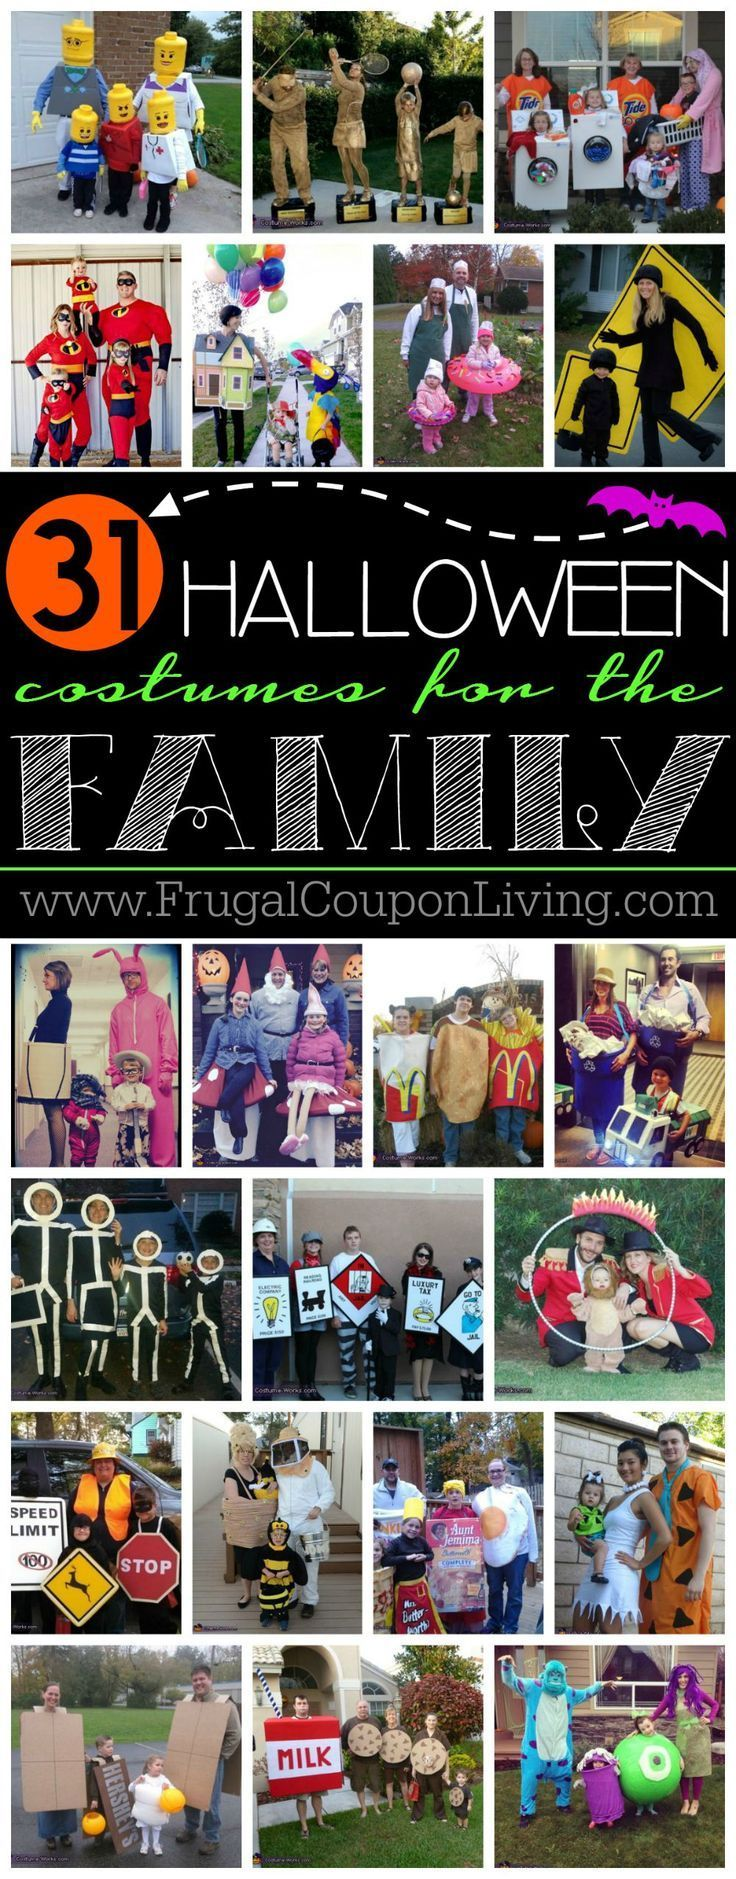 Best ideas for diy crafts family halloween costume ideas on